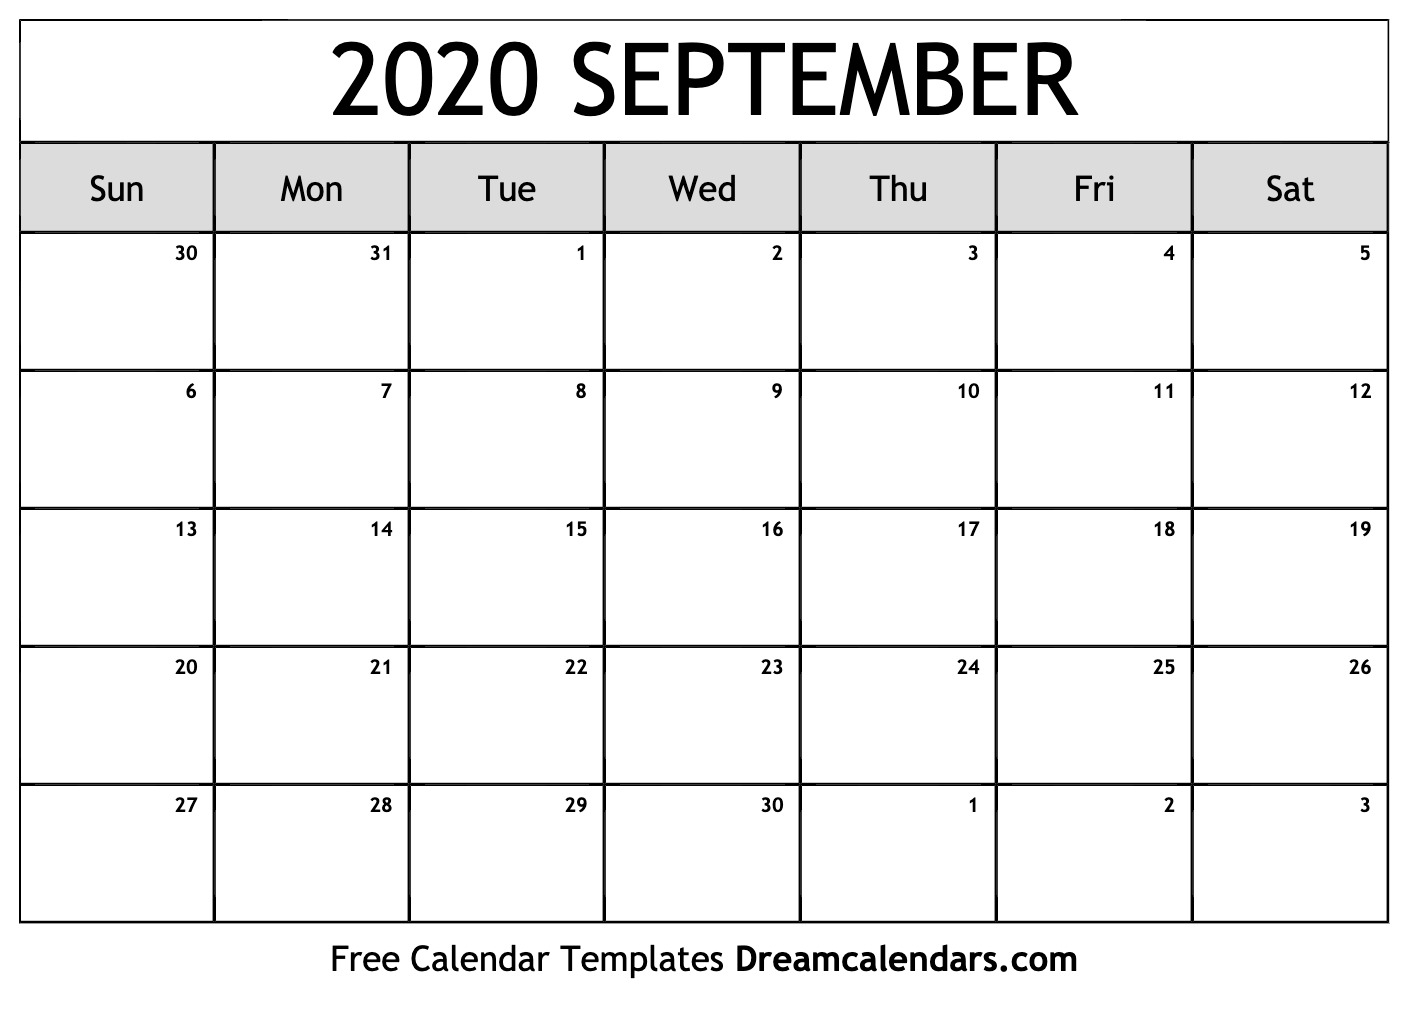 Free Blank September 2020 Printable Calendar throughout Kalendar Kuda September 2020